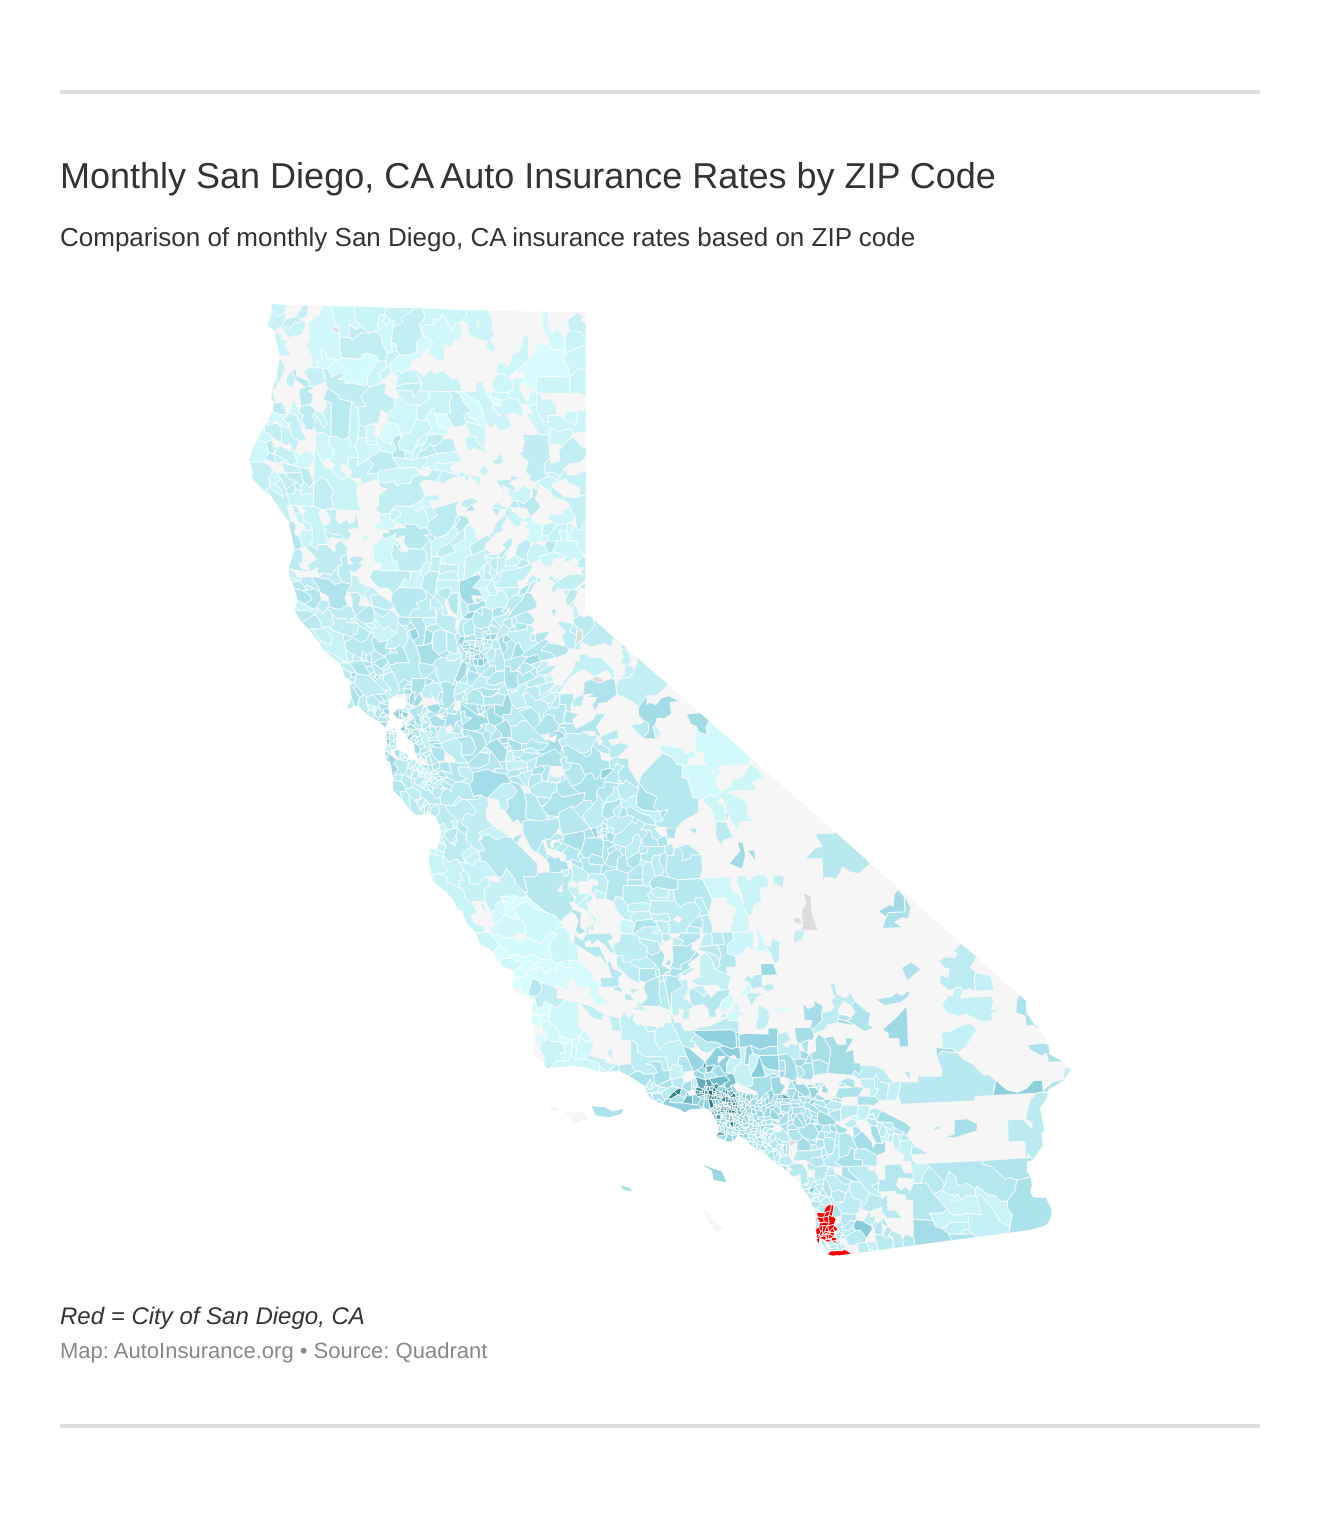 Monthly San Diego, CA Auto Insurance Rates by ZIP Code